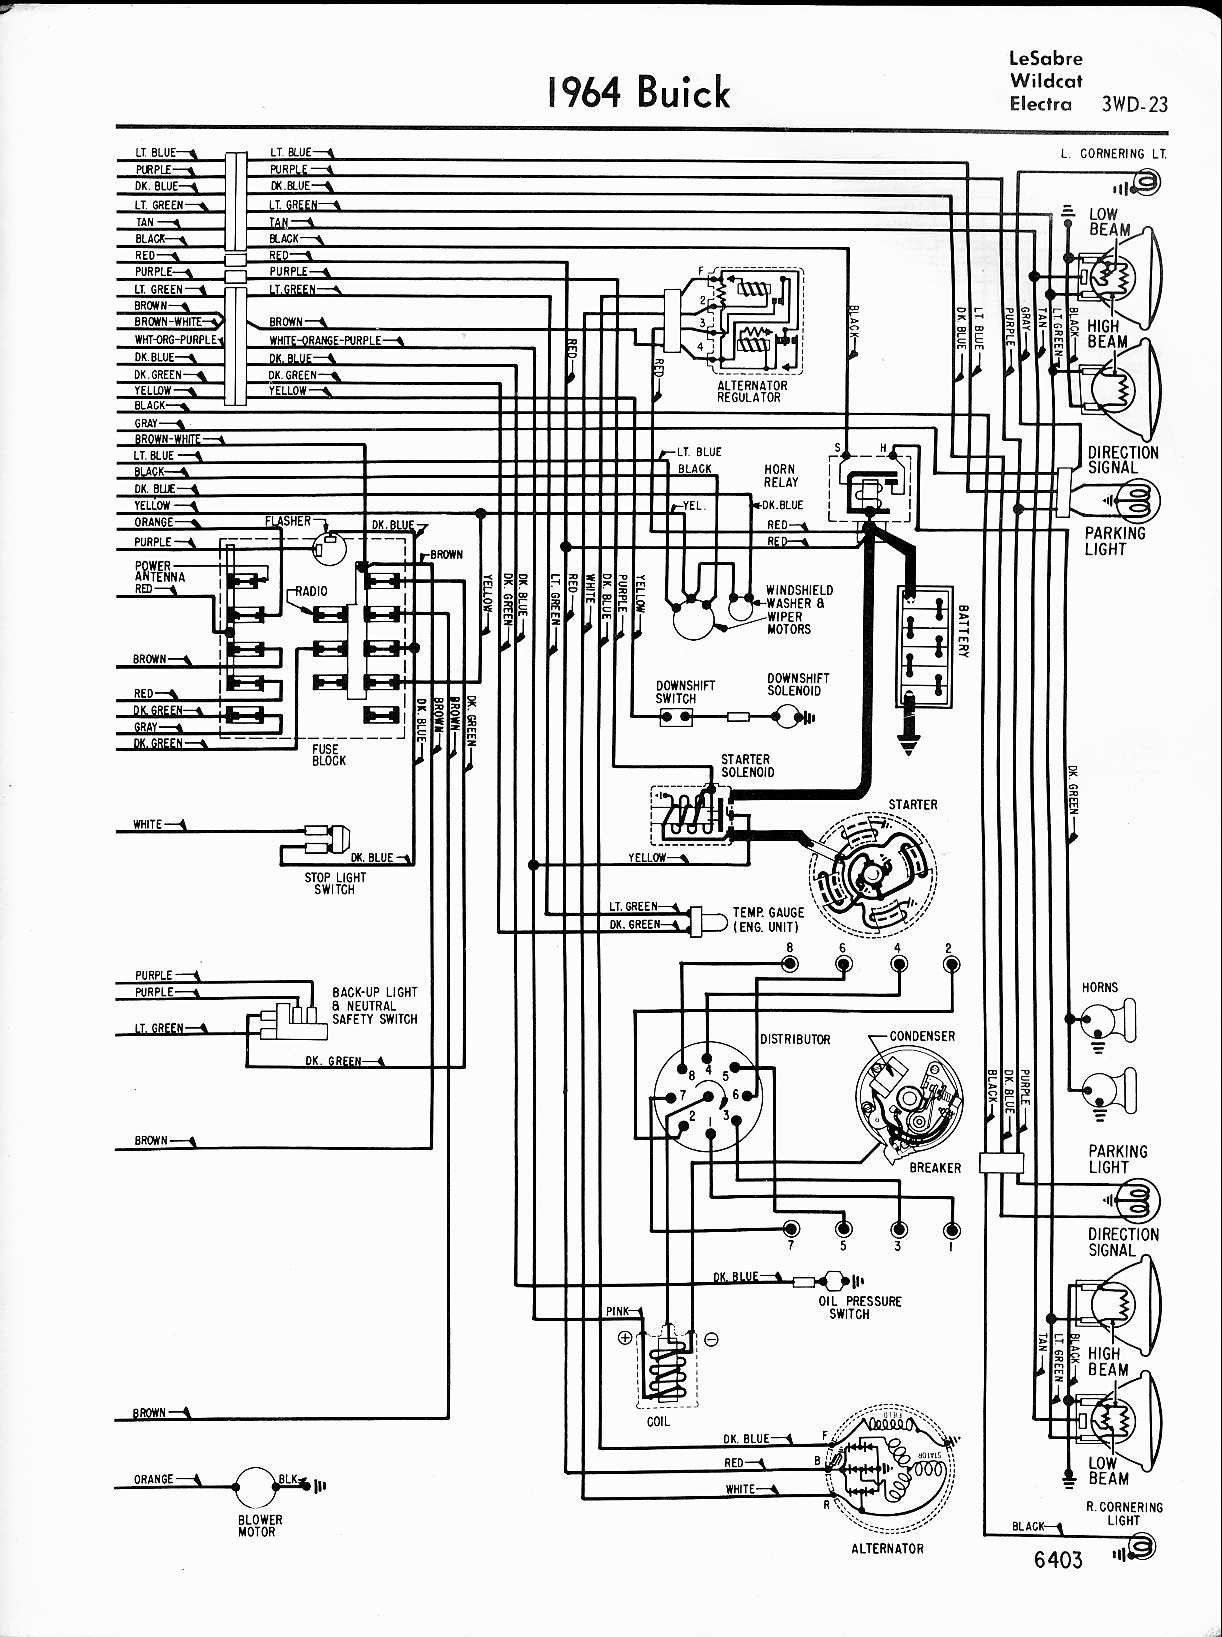 Infiniti Q45 Engine Diagram 1997 I30 Fuse Box 97 Alternator Archives Joescablecar Of